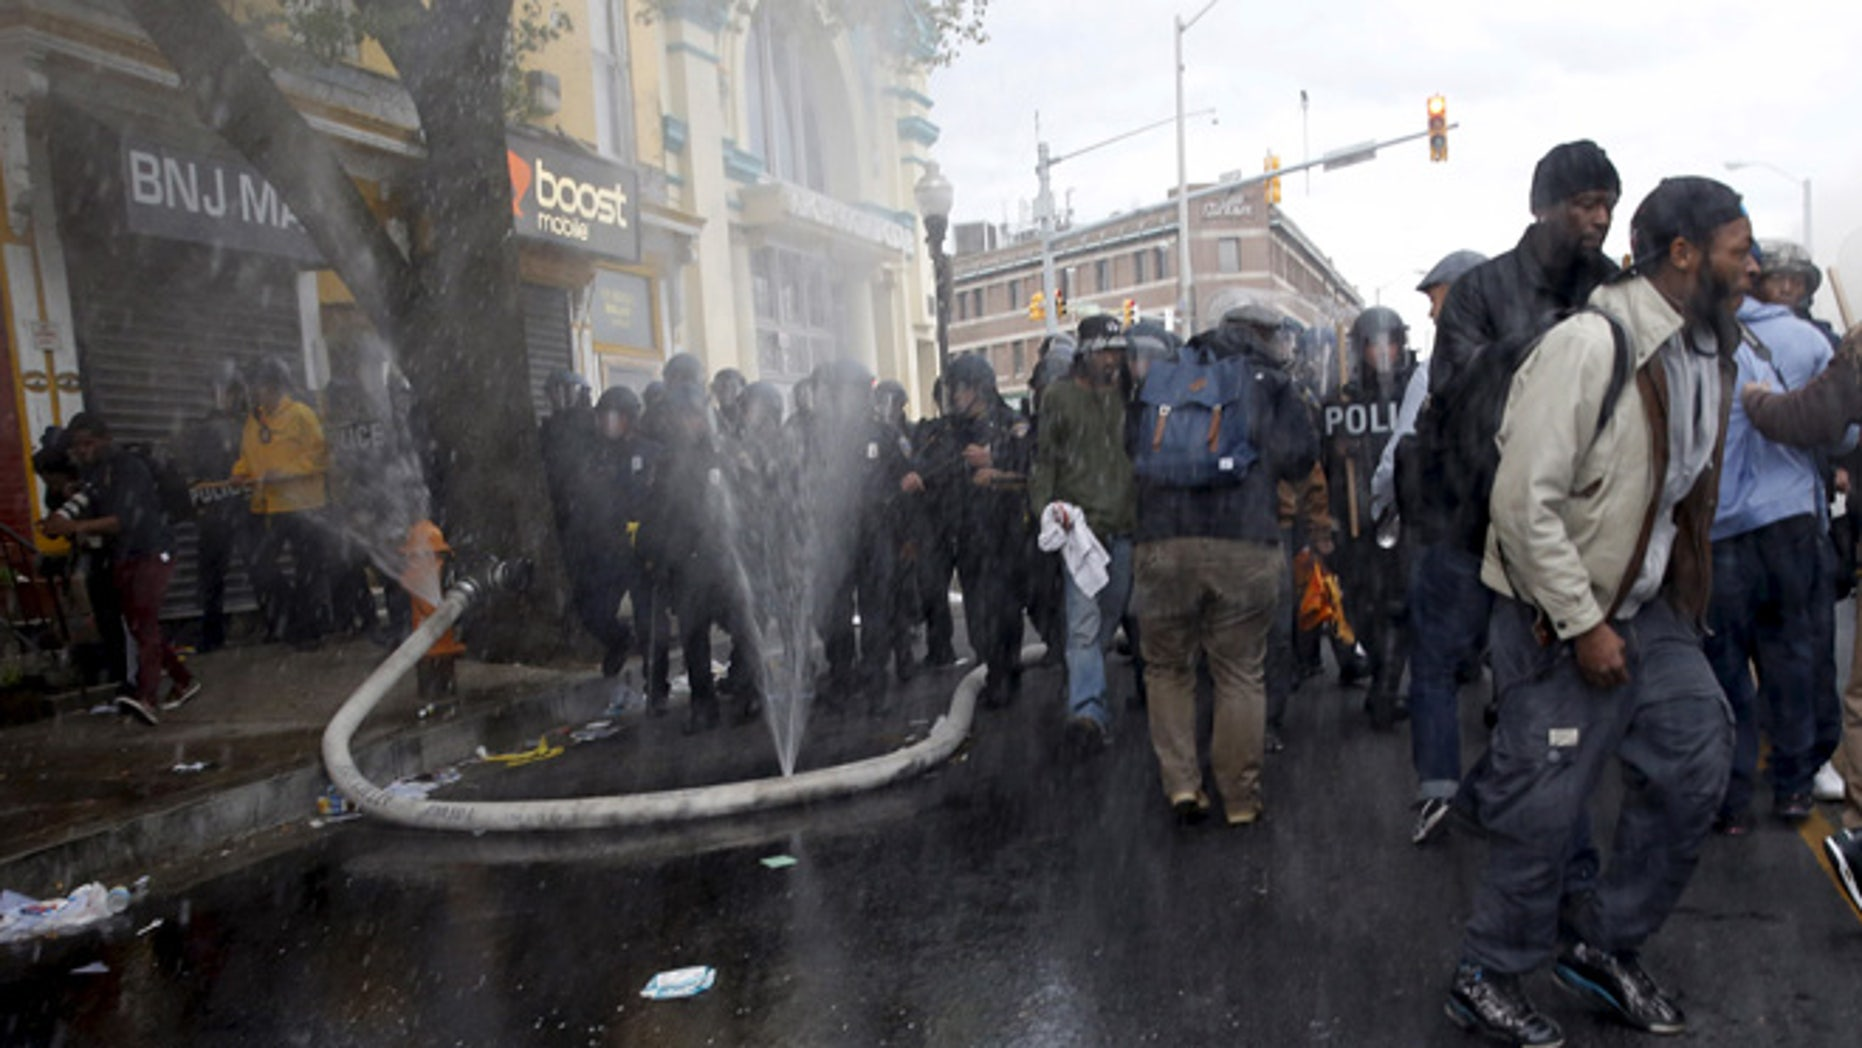 APRIL 2015: A fire hose cut by rioters sprays water into the air as protesters and a line of police move in at the site of a burning CVS drug store during clashes in Baltimore